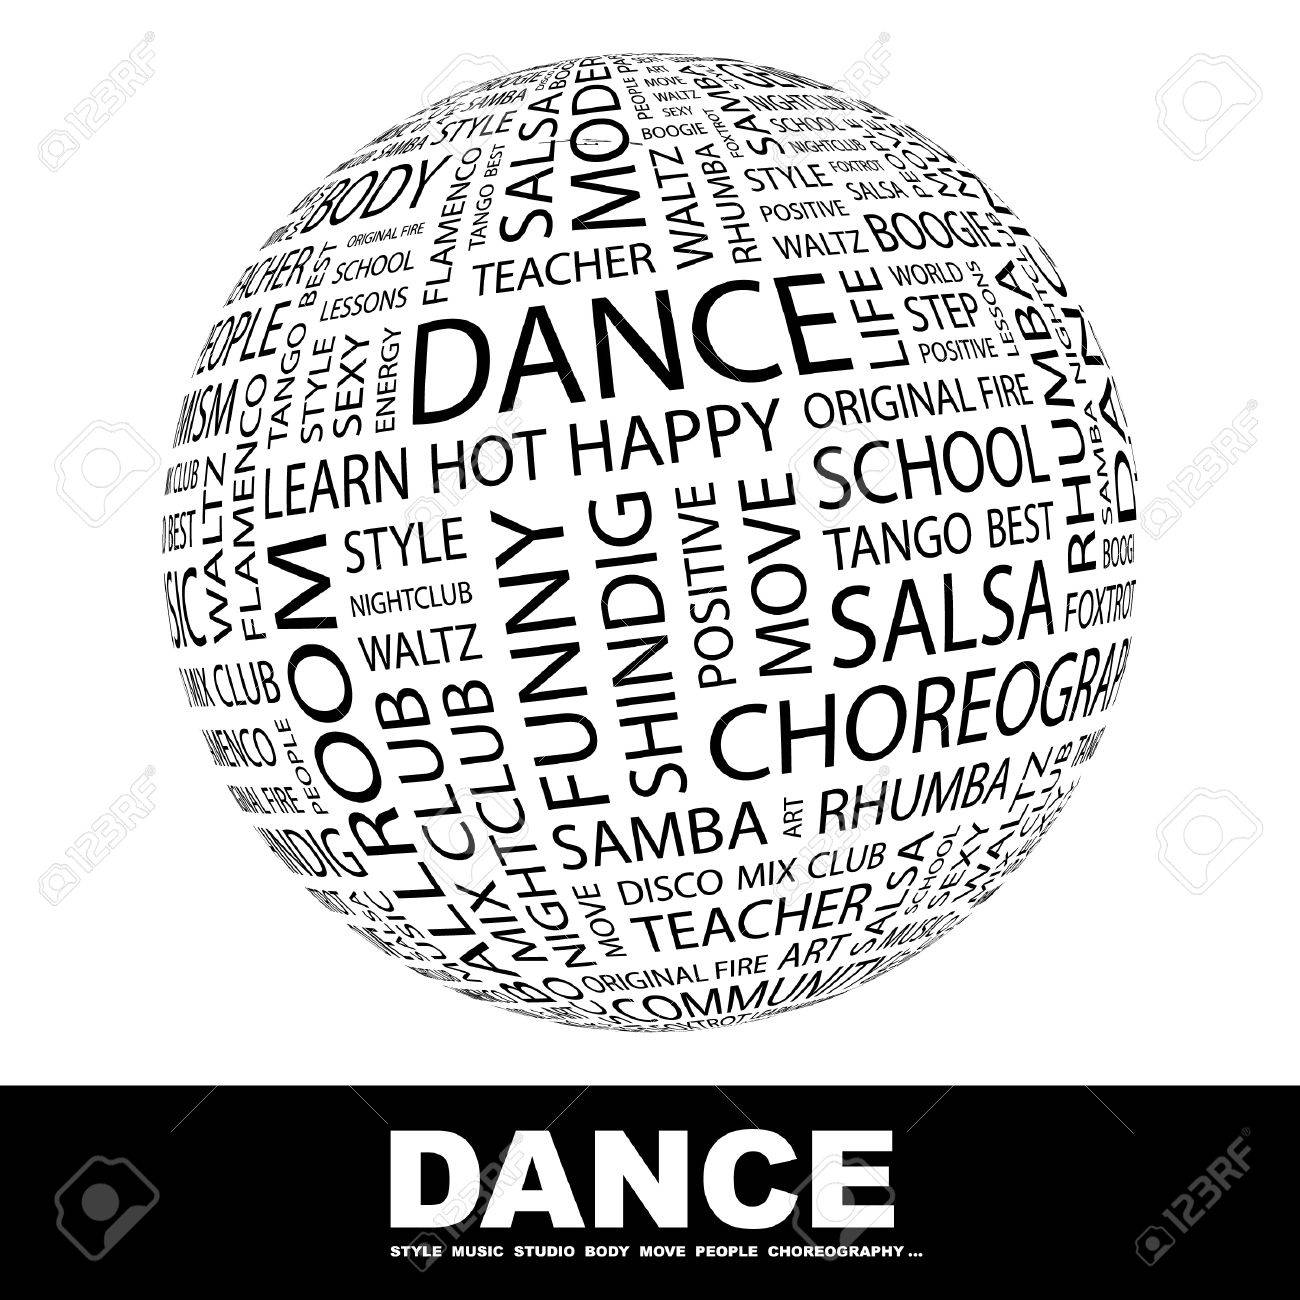 DANCE. Globe with different association terms. Wordcloud vector illustration. Stock Vector - 9131102